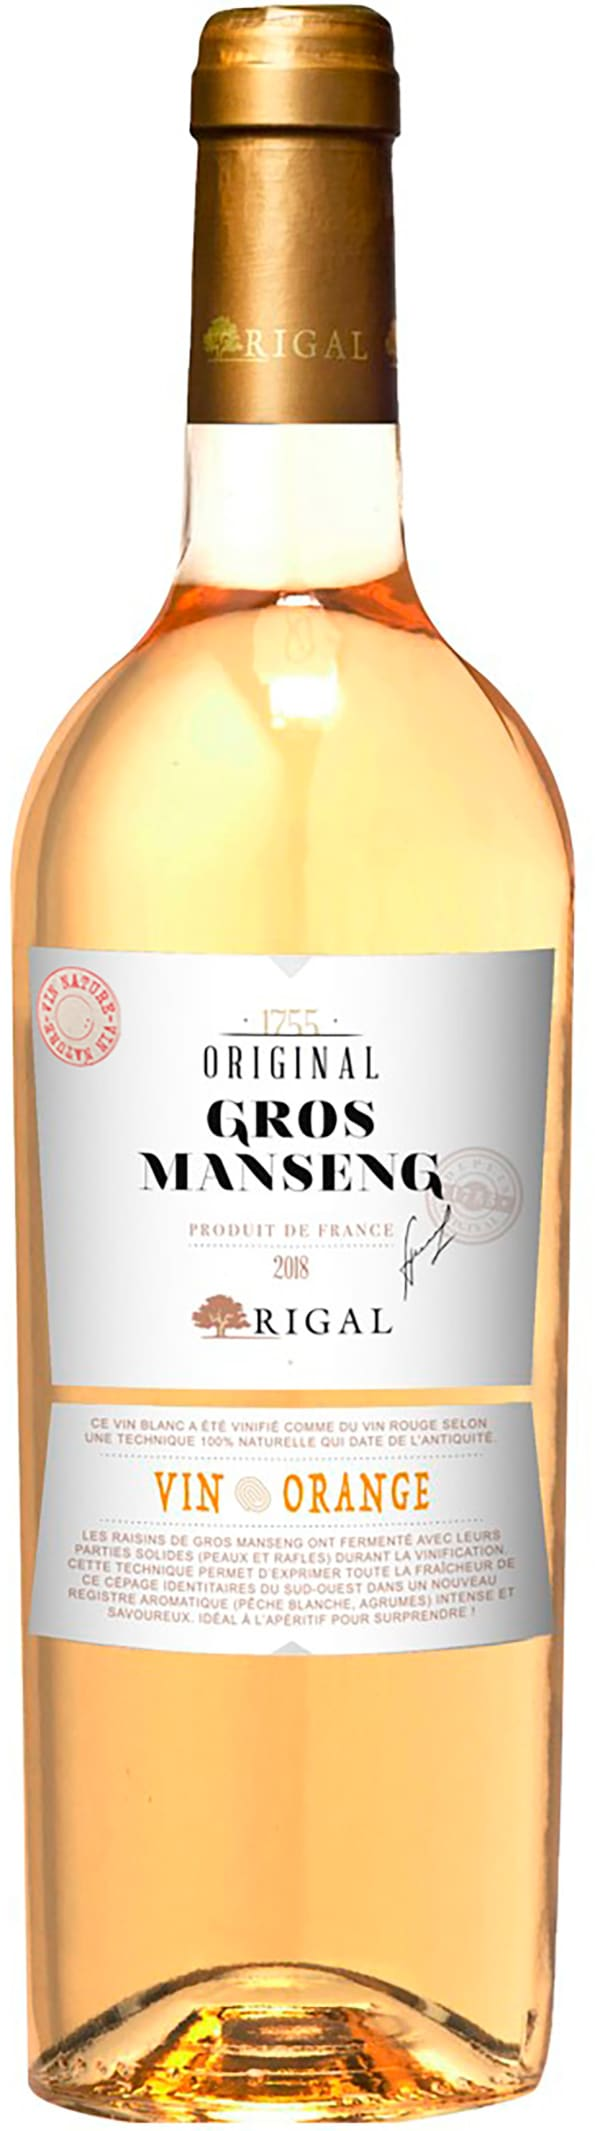 Rigal Original Gros Manseng Vin Orange 2018